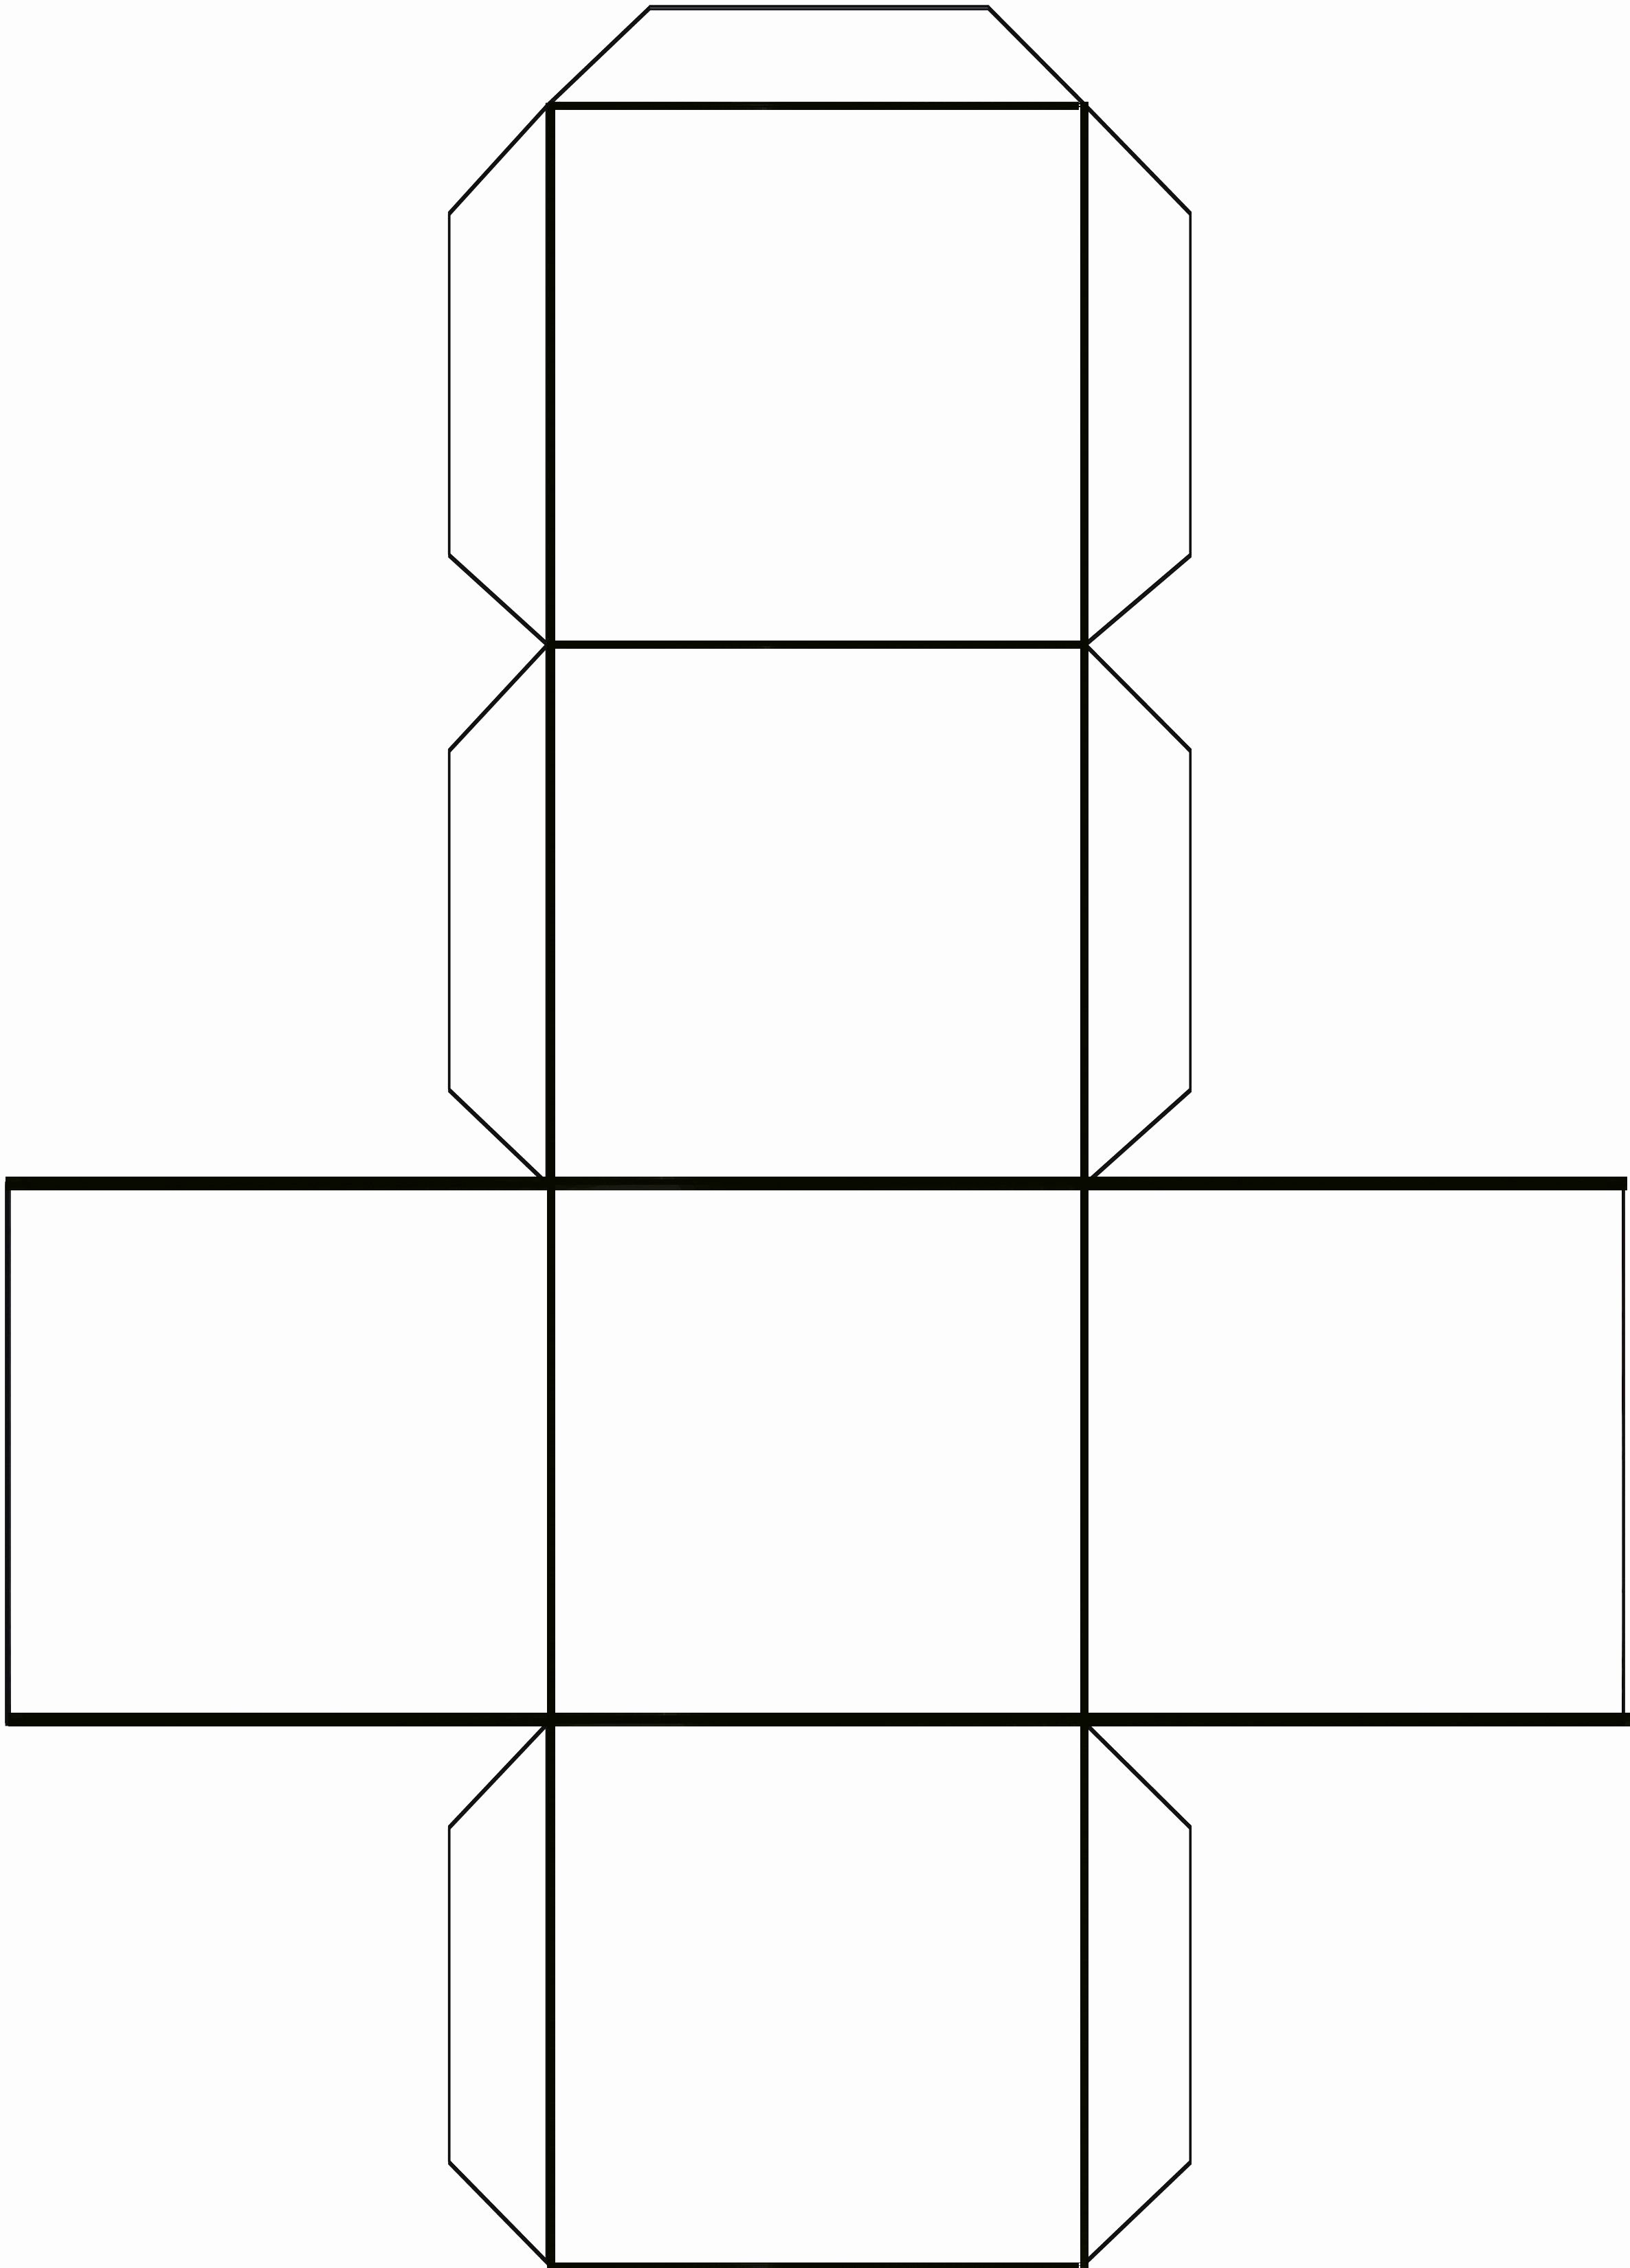 Printable Dice Template Beautiful Cube Ybe to Make Dice